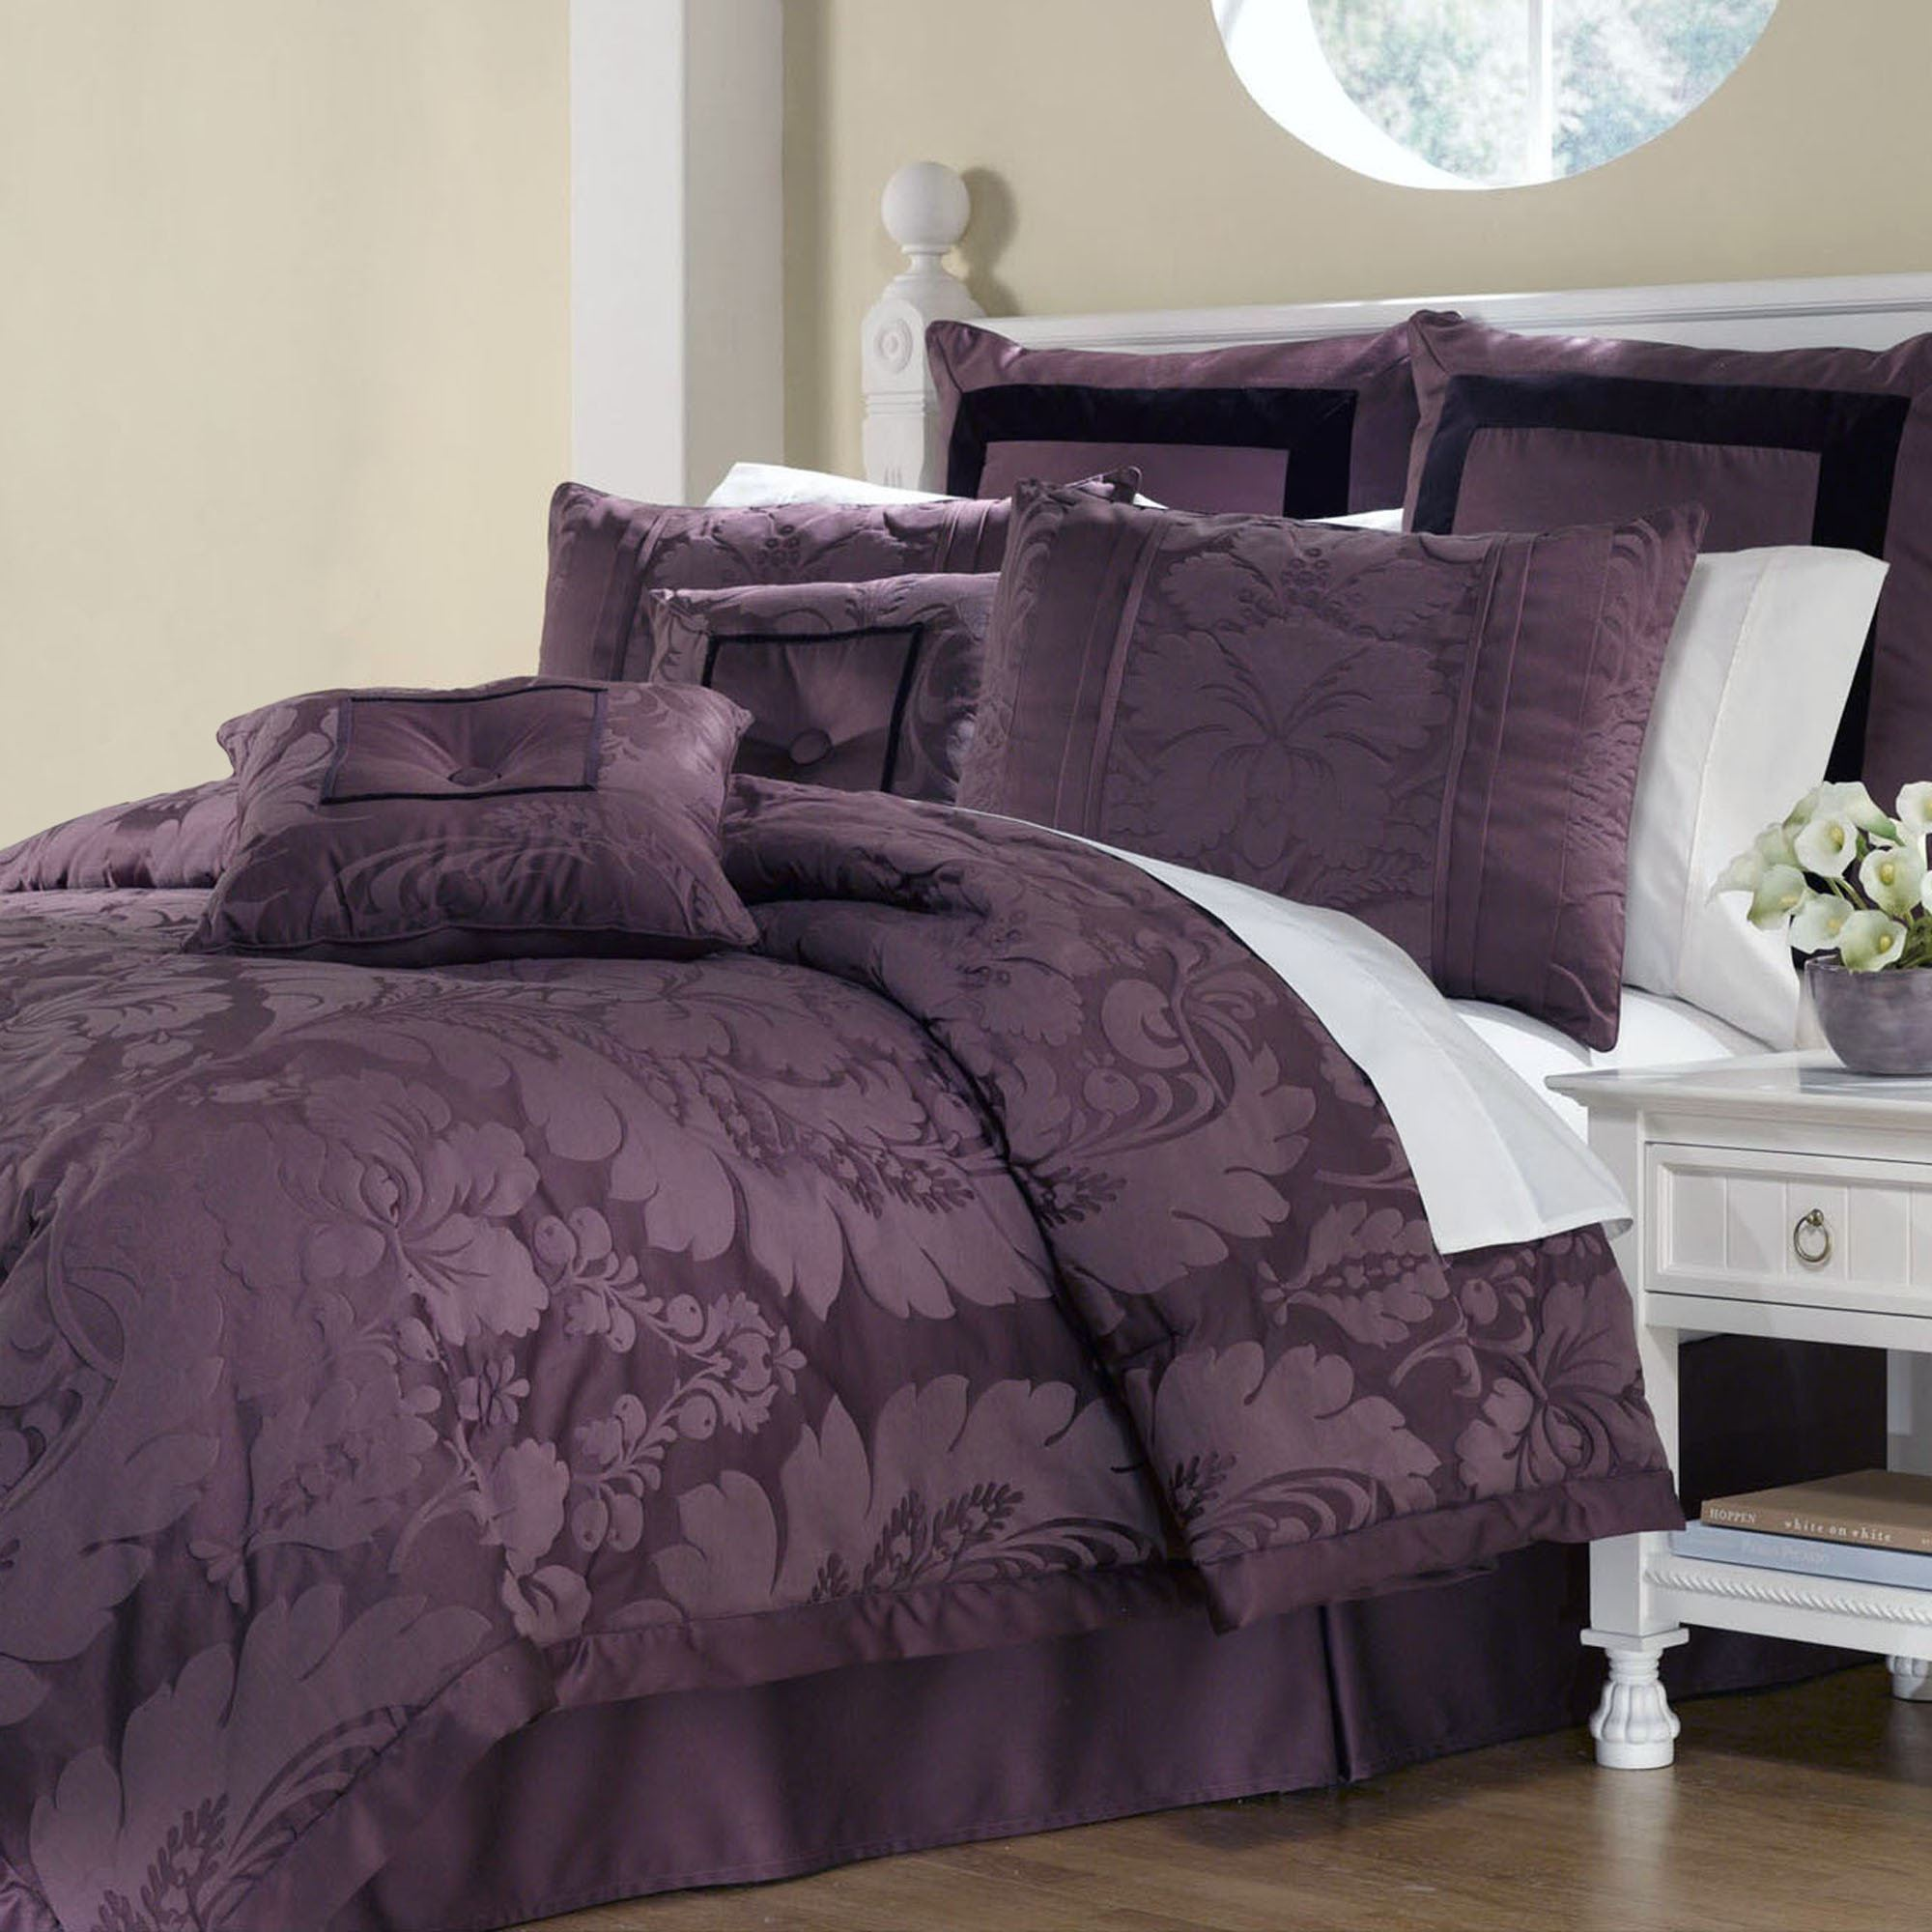 cover sets good and ideas purple duvet image bedding comforter of lostcoastshuttle lilac black set lavender